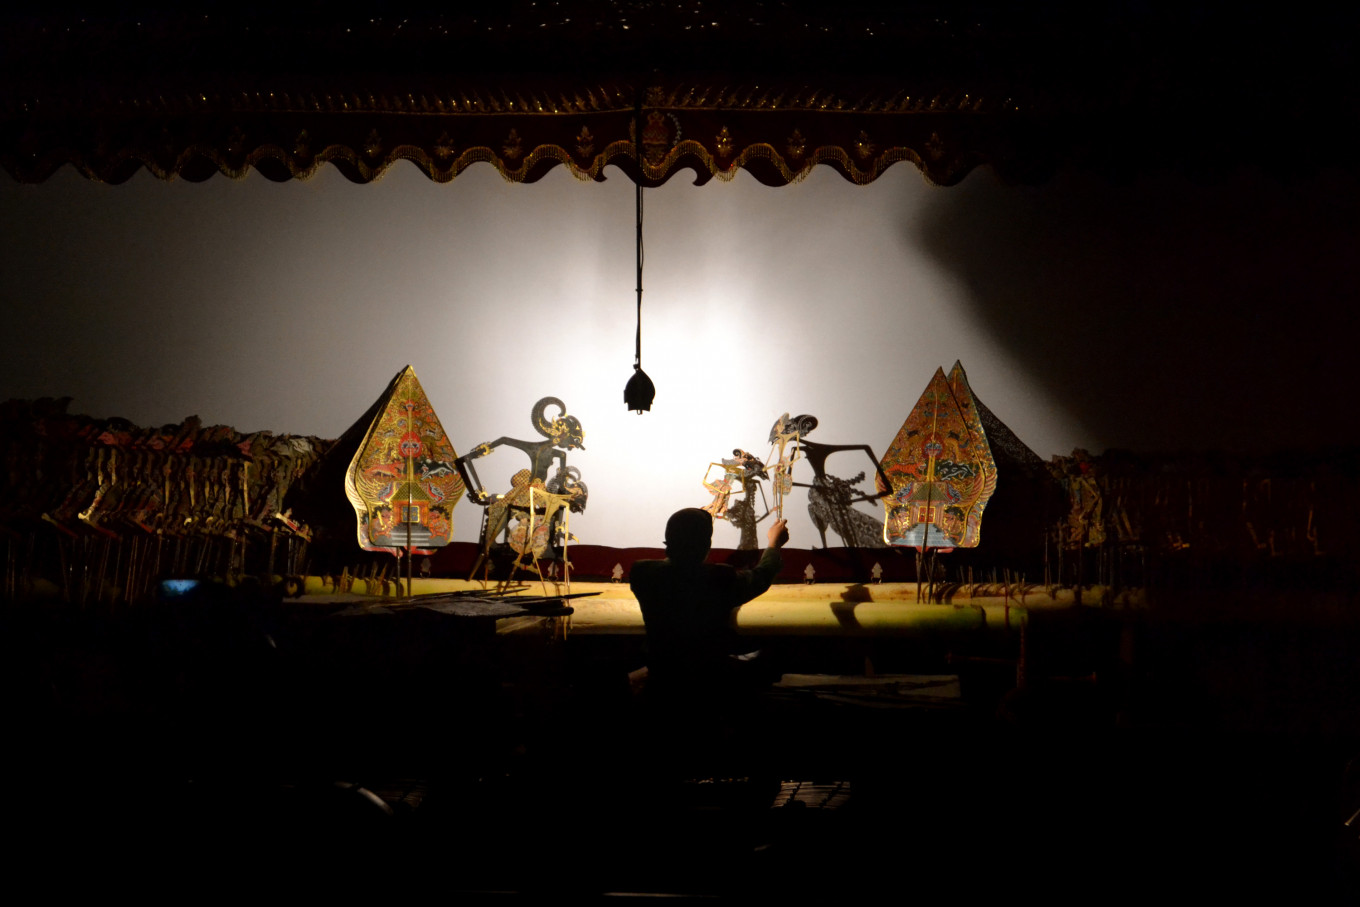 Five prominent venues for art performances in Surakarta